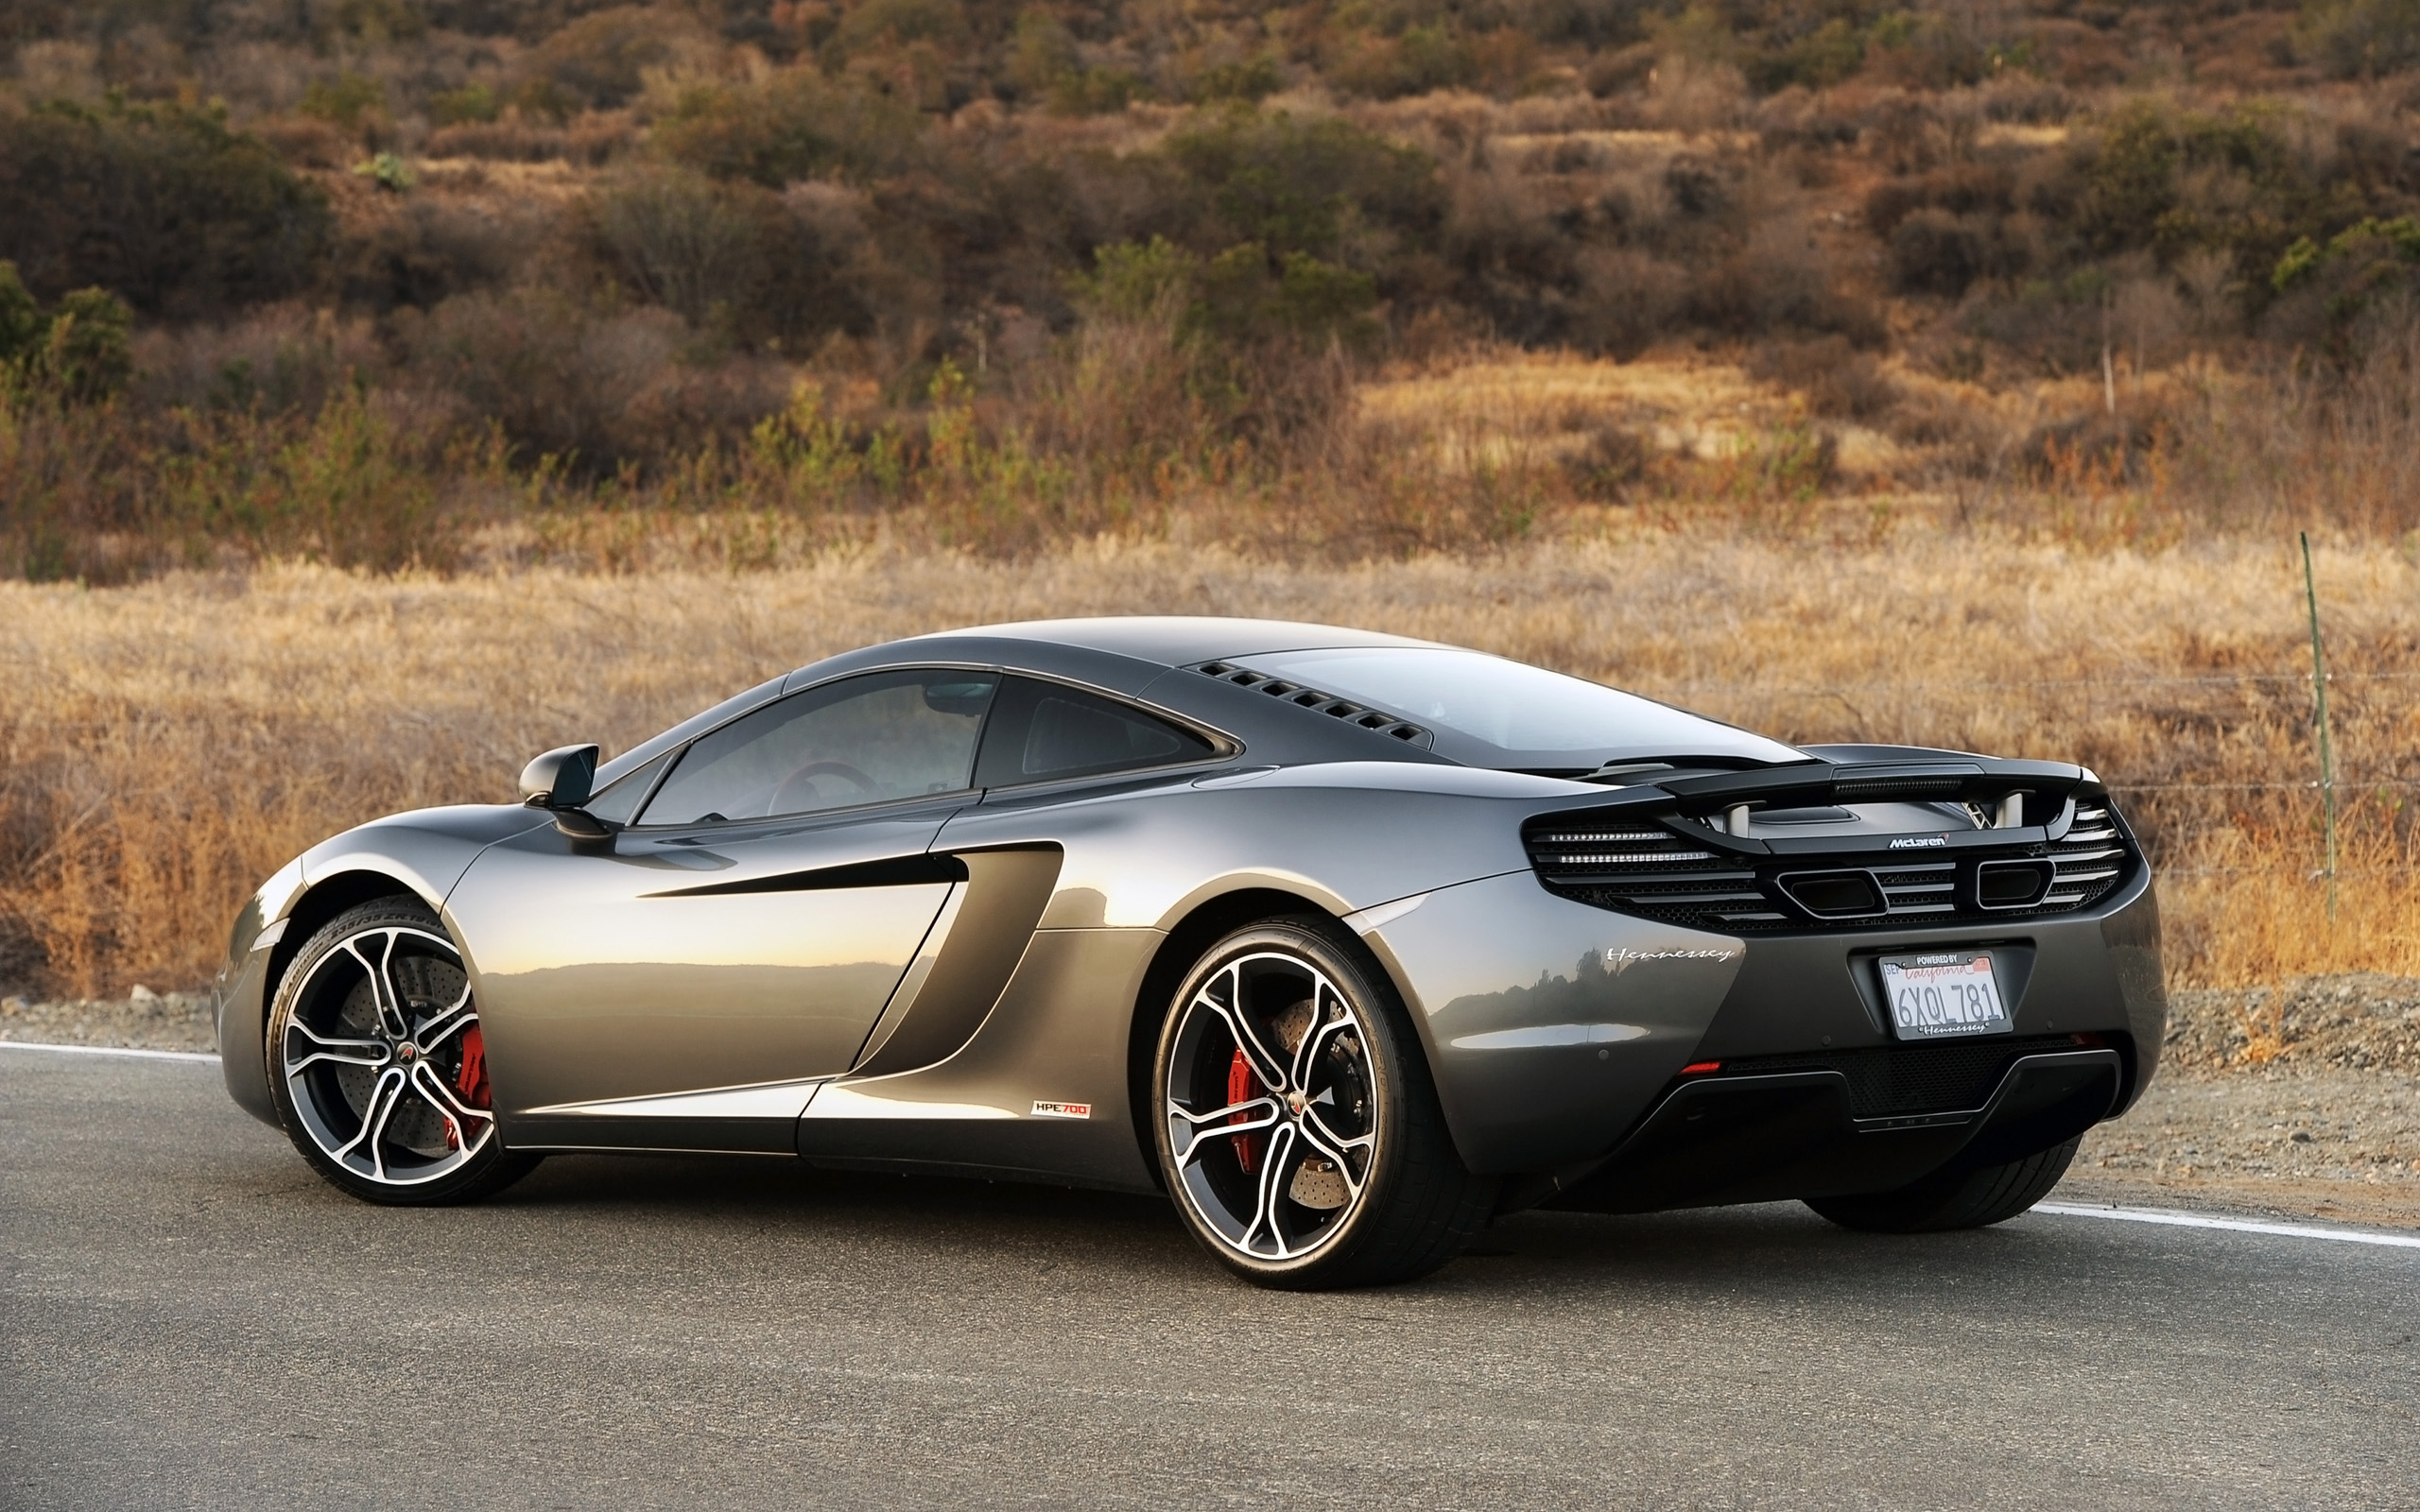 mclaren mp4 12c white wallpaper. mclaren mp412c 2013 10 mclaren mp4 12c white wallpaper